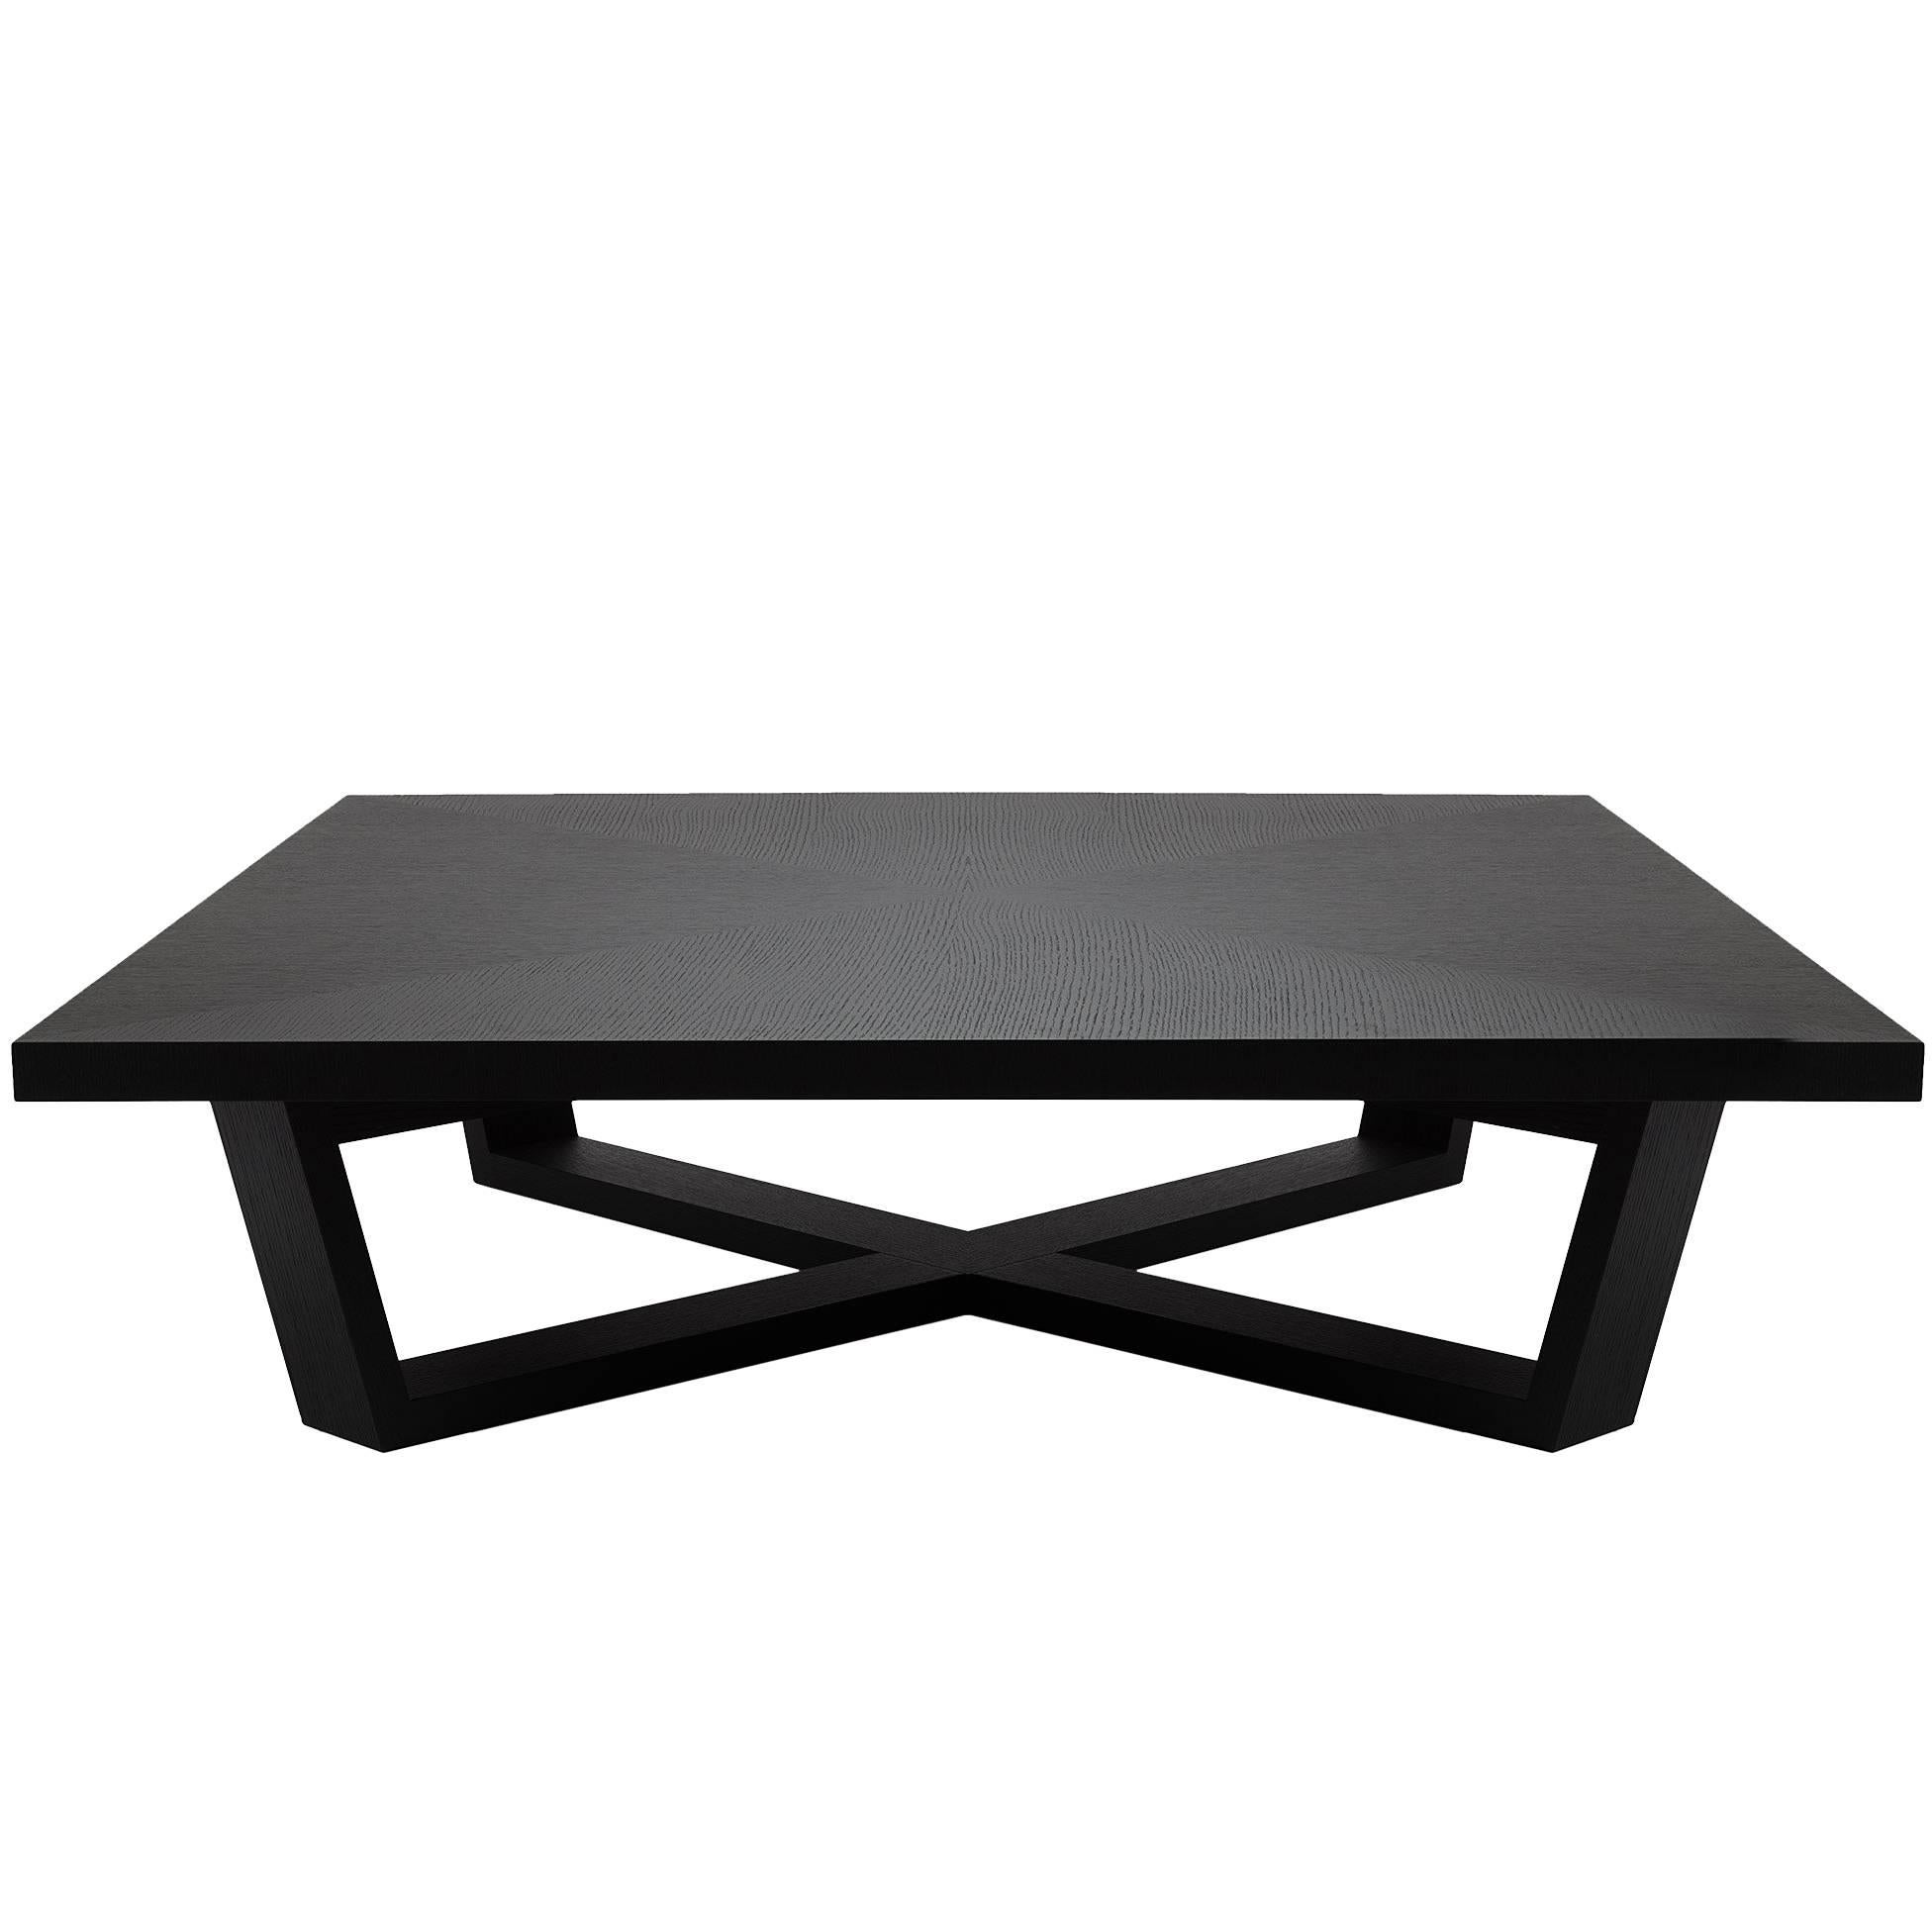 Charmant Brushed Black Oak Coffee Table For Sale